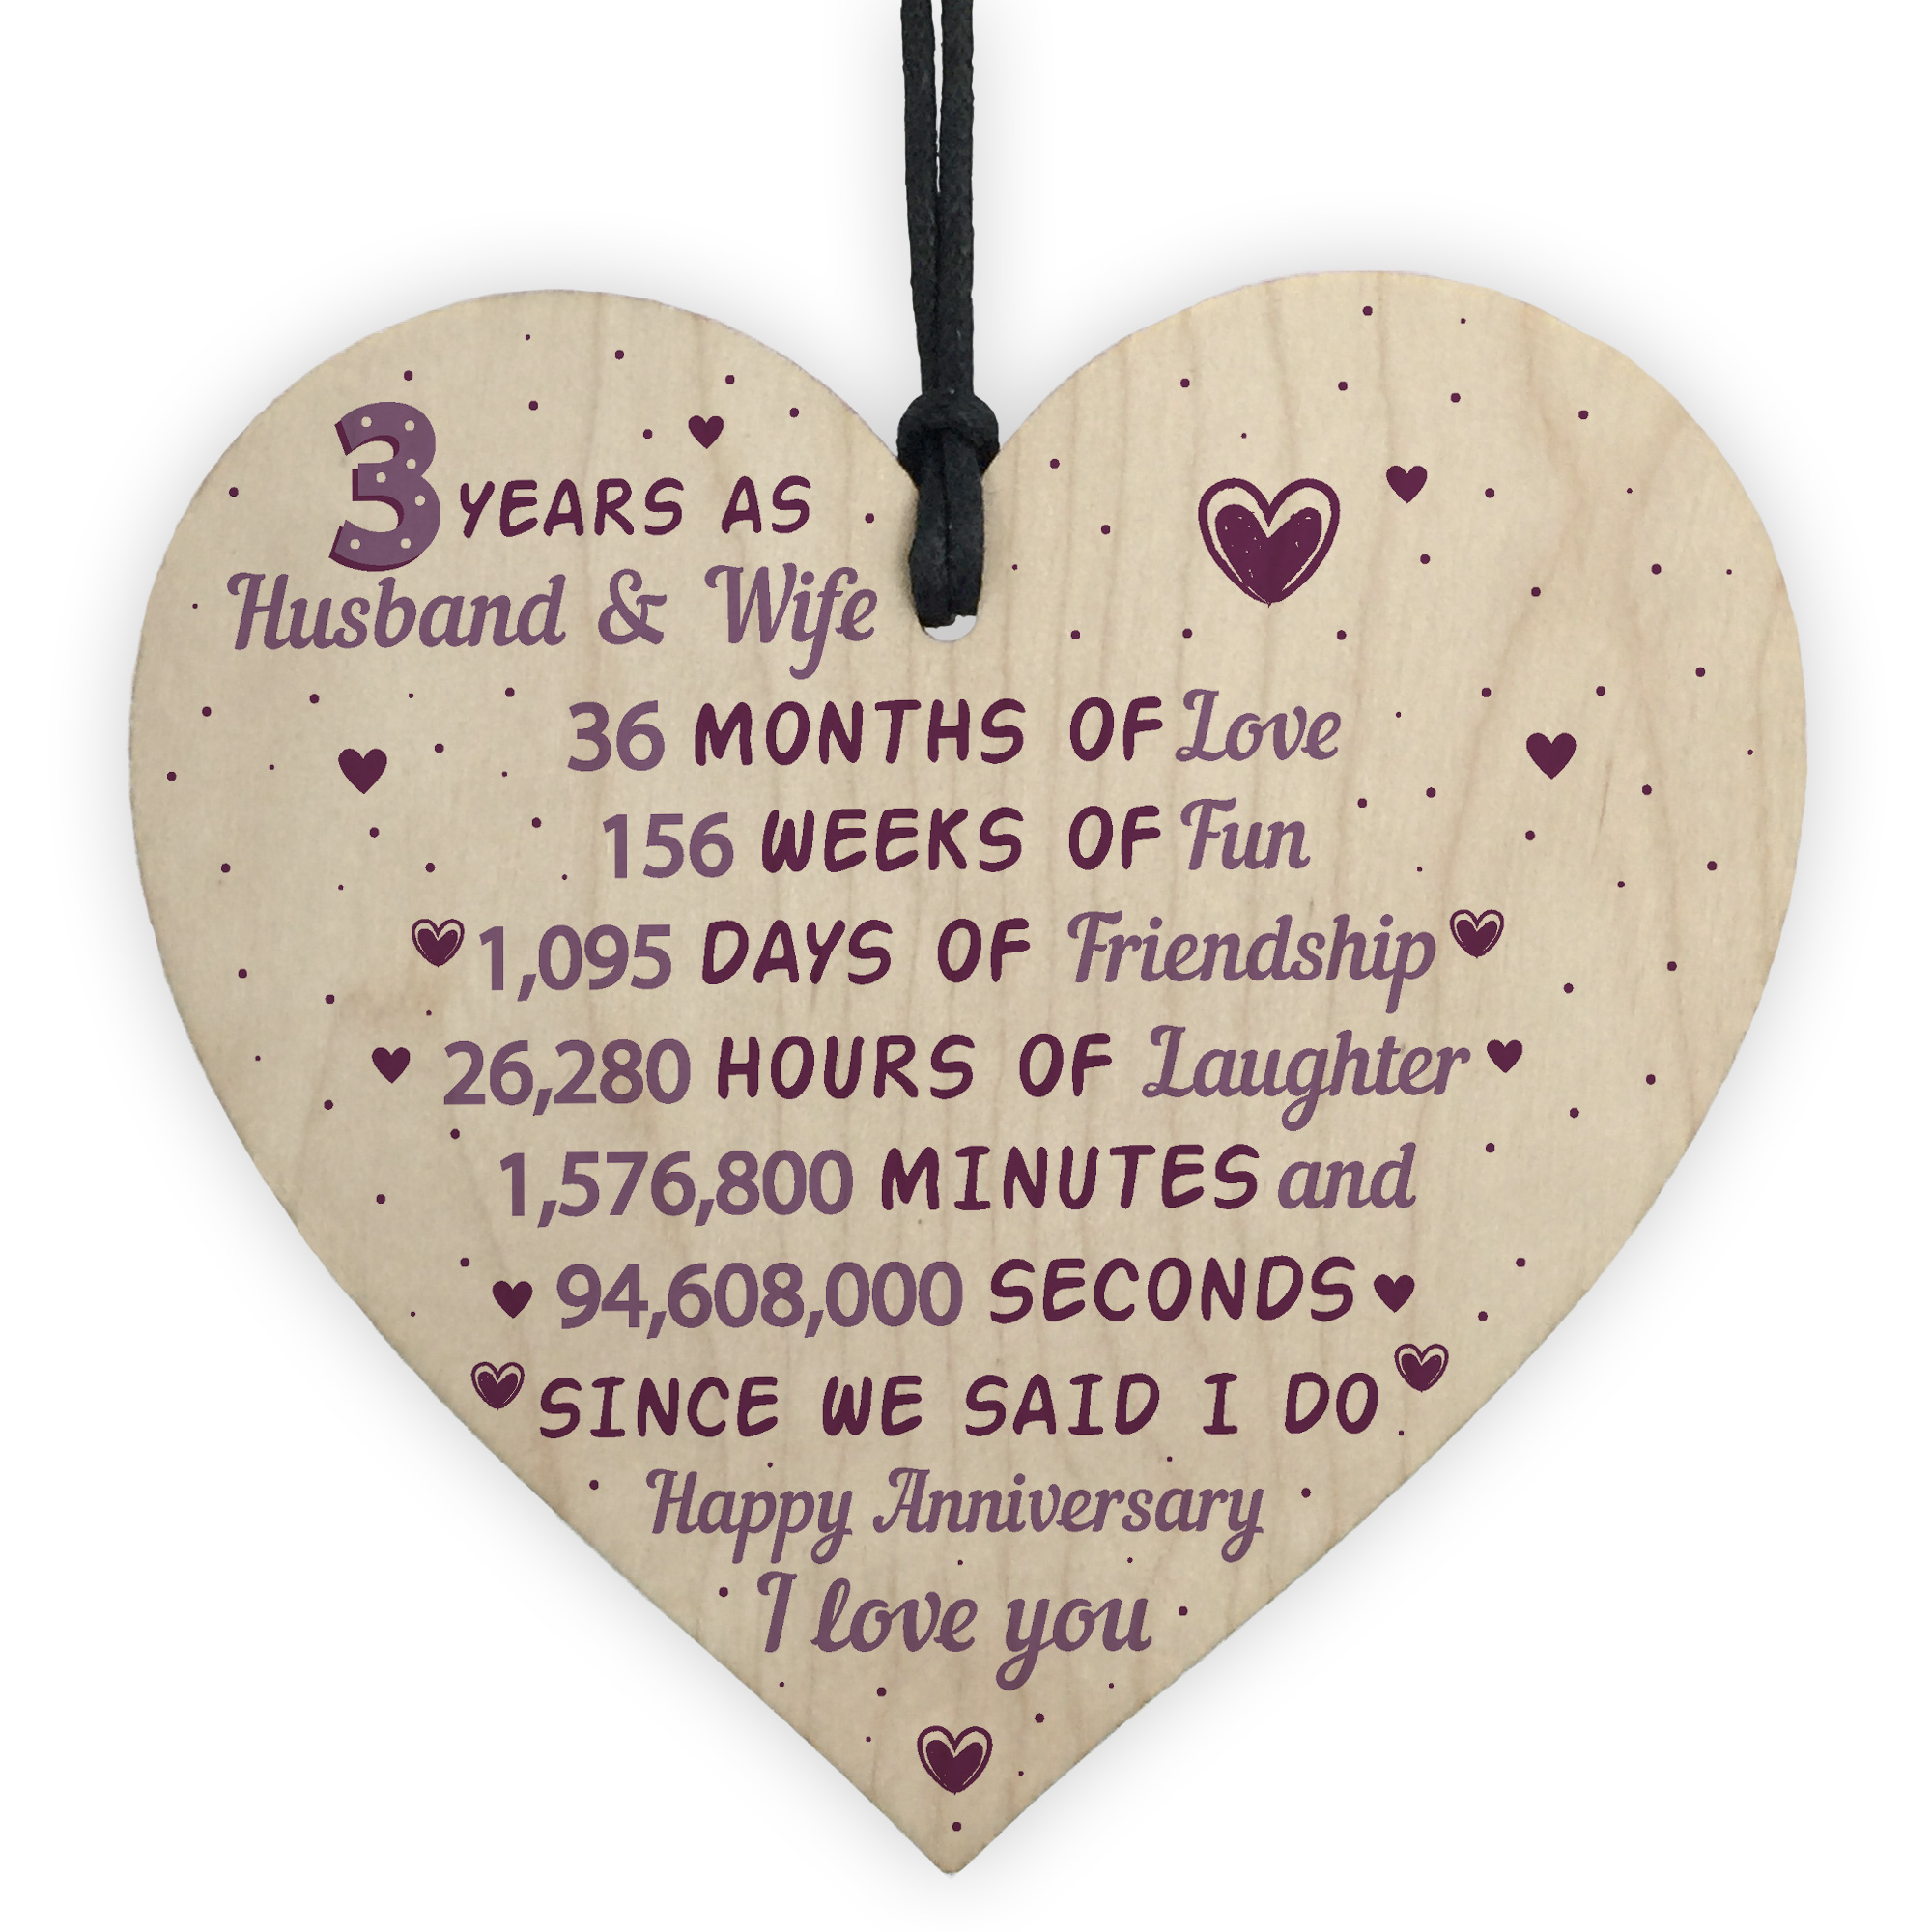 Gifts For 3rd Wedding Anniversary: 3rd Wedding Anniversary Gift Wooden Heart Leather Third